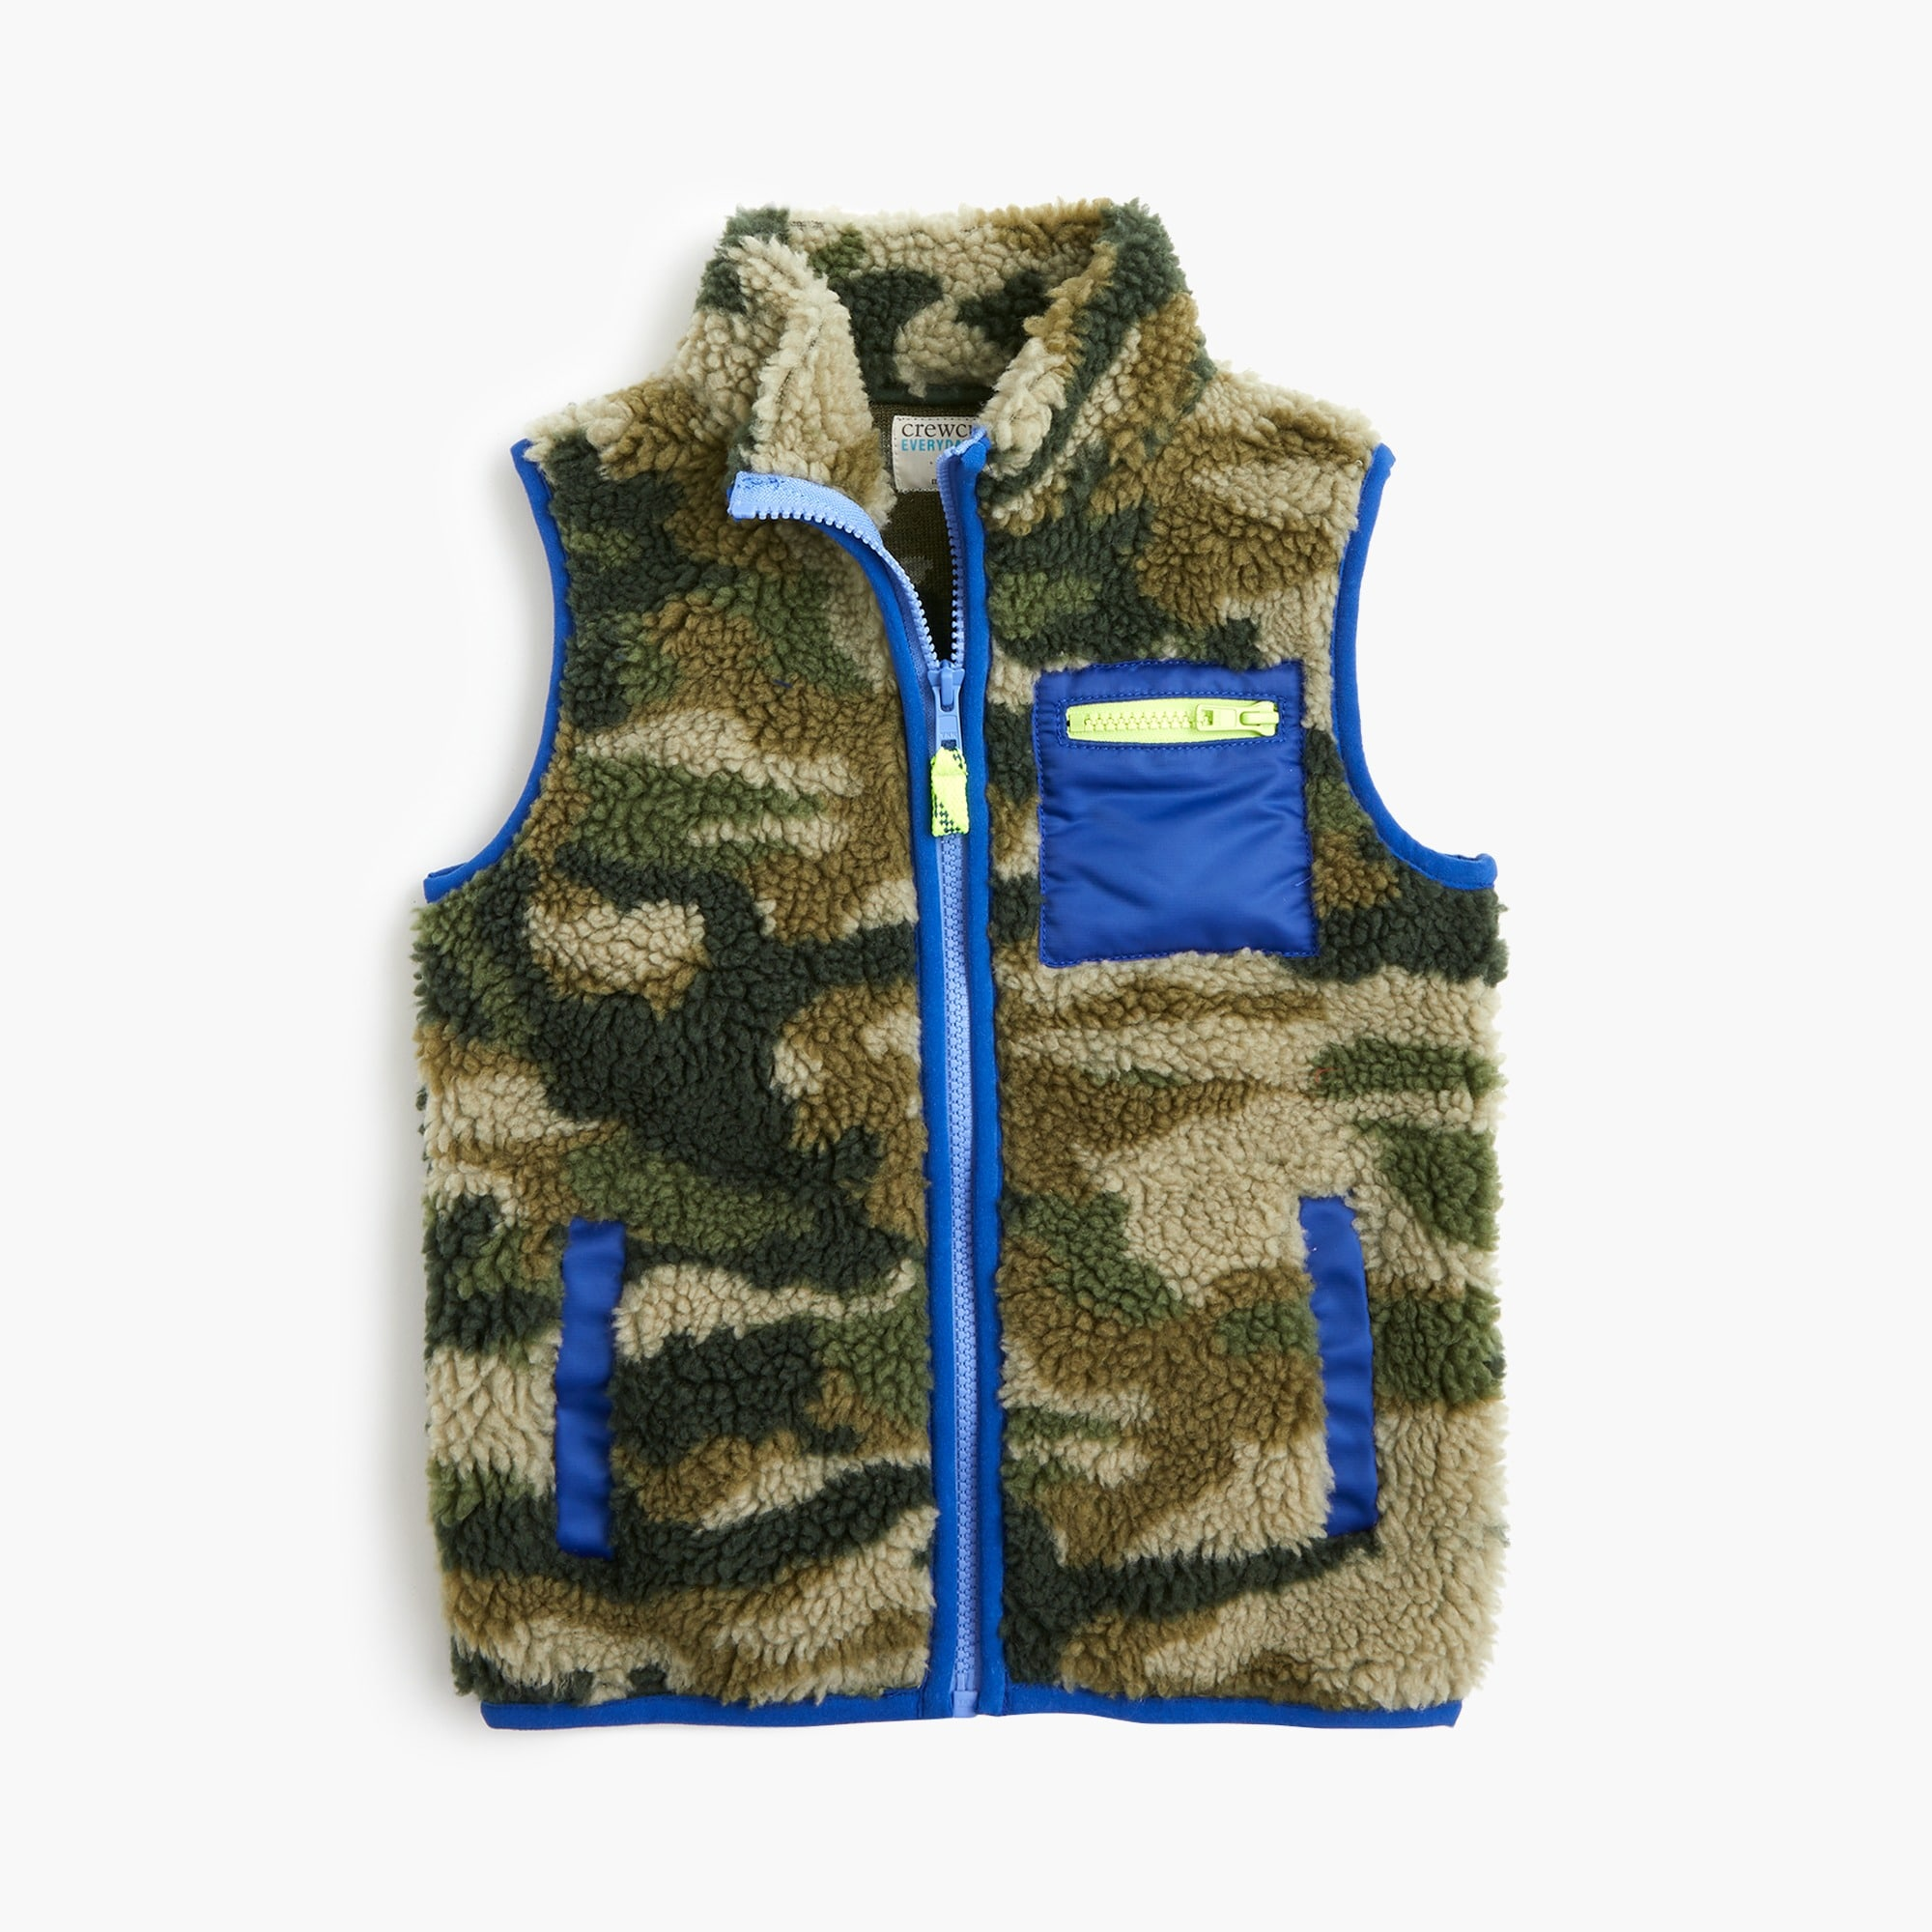 Boys' sherpa vest in camo